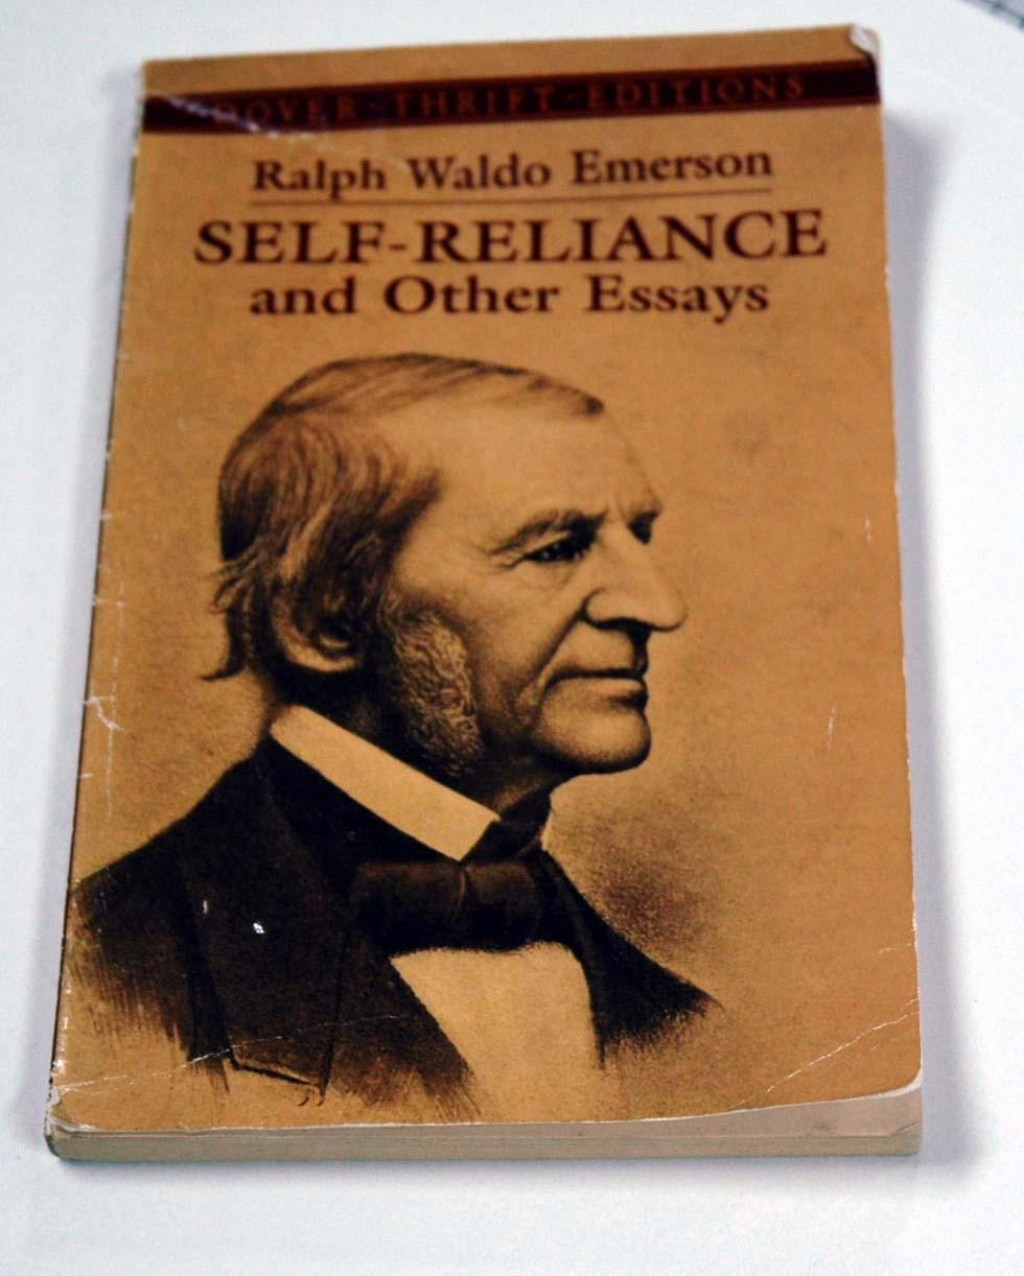 004 Essay Example Ralph Waldo Emerson Unusual Essays Nature And Selected By Pdf Download First Second Series Large